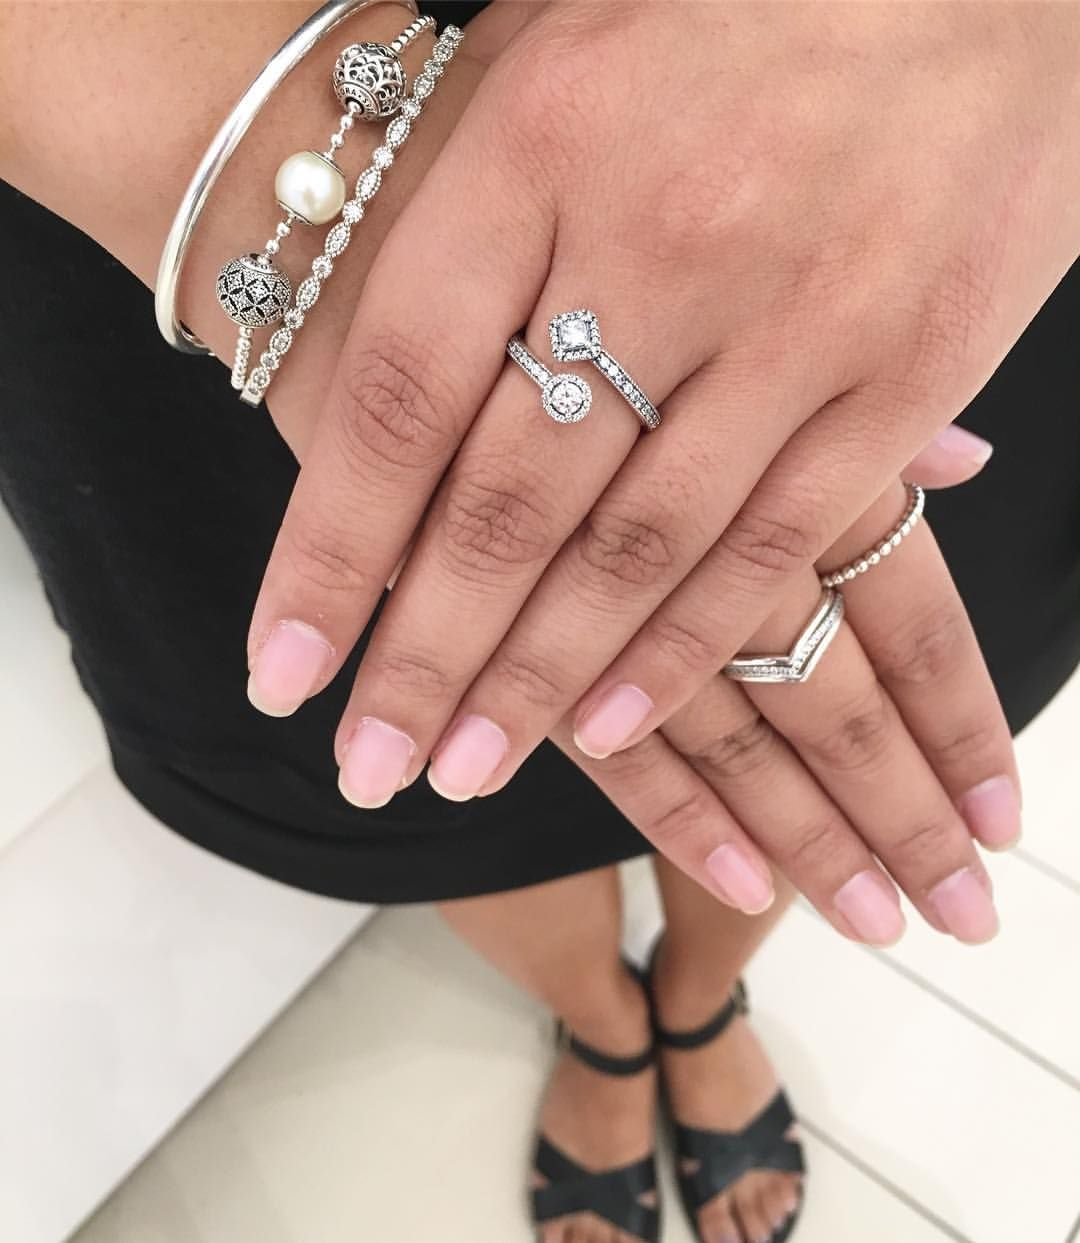 d9c0fe3b7 Our brand ambassador Aerielle is showing off our beautiful abstract elegance  ring everyone's been talking about! Come see us at @pandorapencentre for  yours!